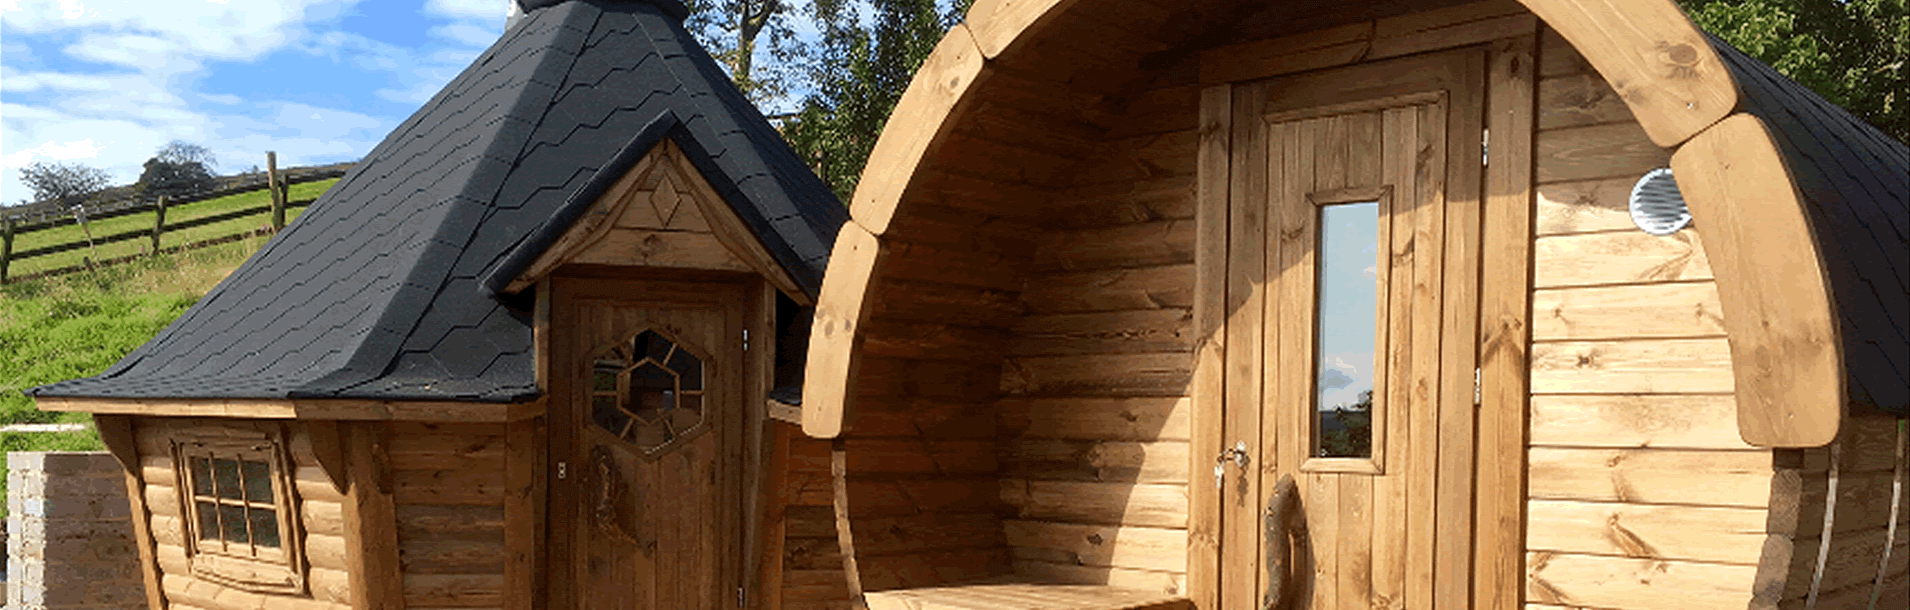 Barbecue Cabin & Barrel Sauna from Carr Bank Garden Centre